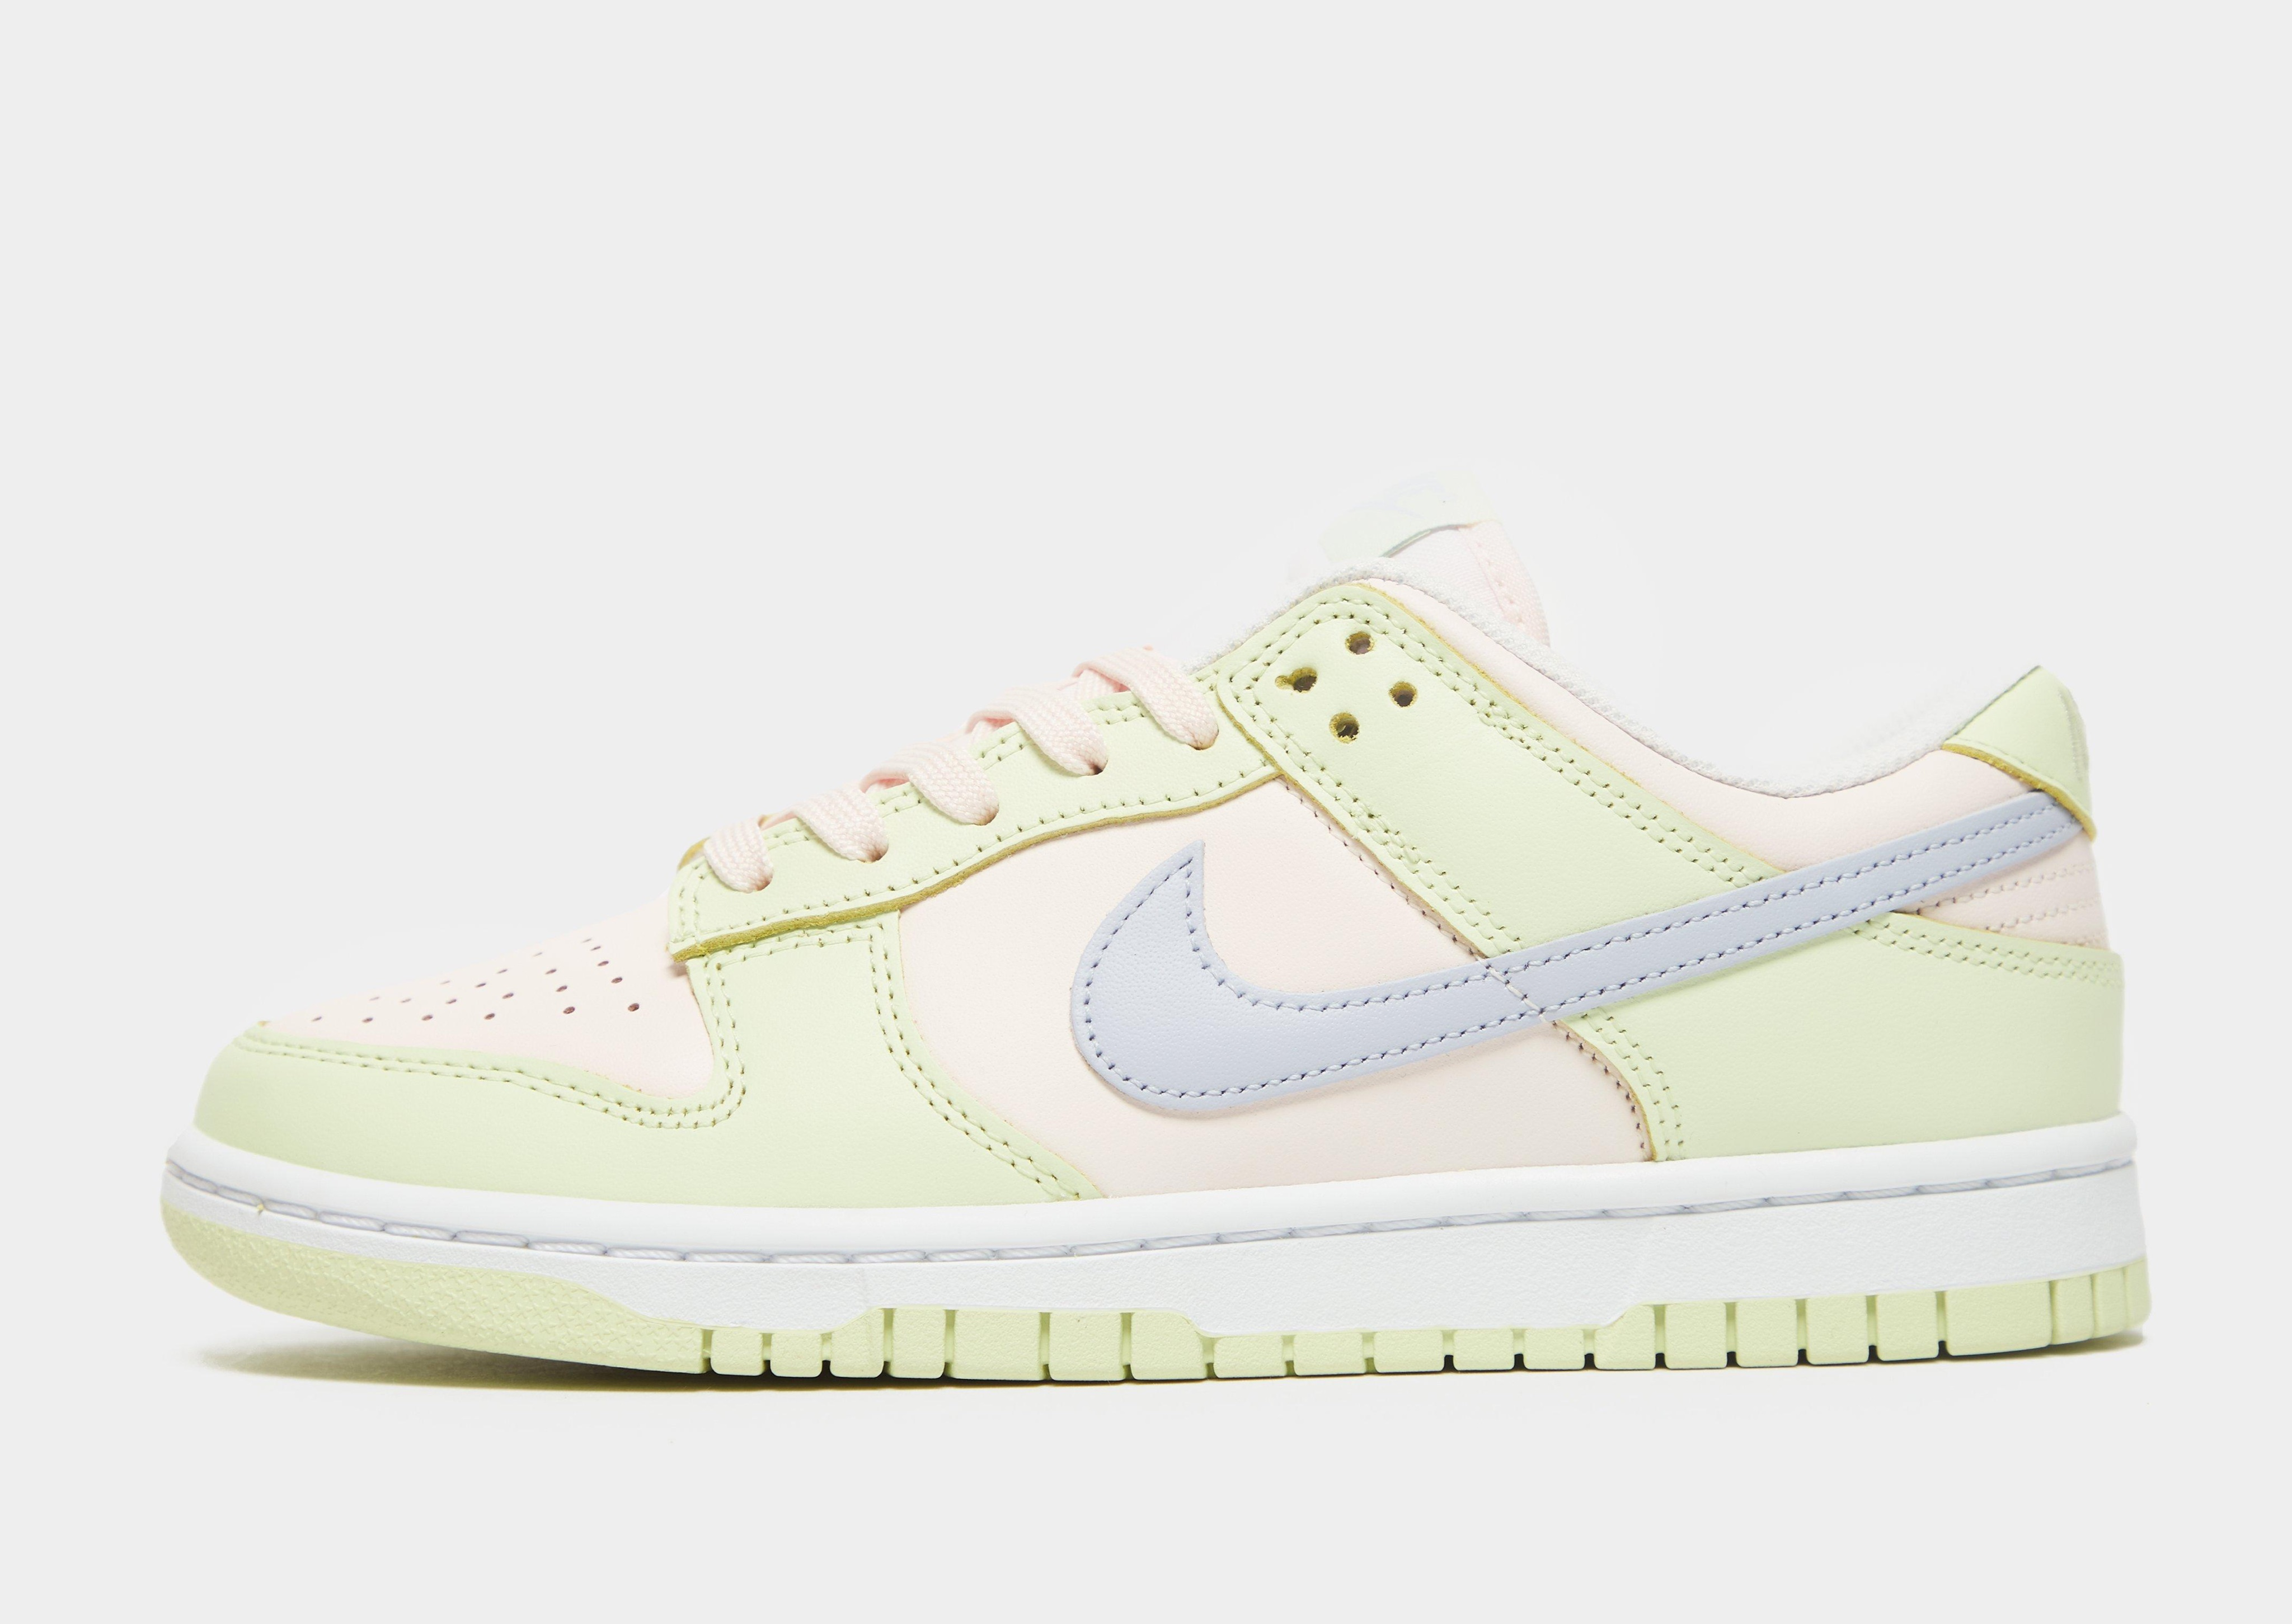 nike-wmns-dunk-low-lime-ice-dd1503-600-release-2021-summer